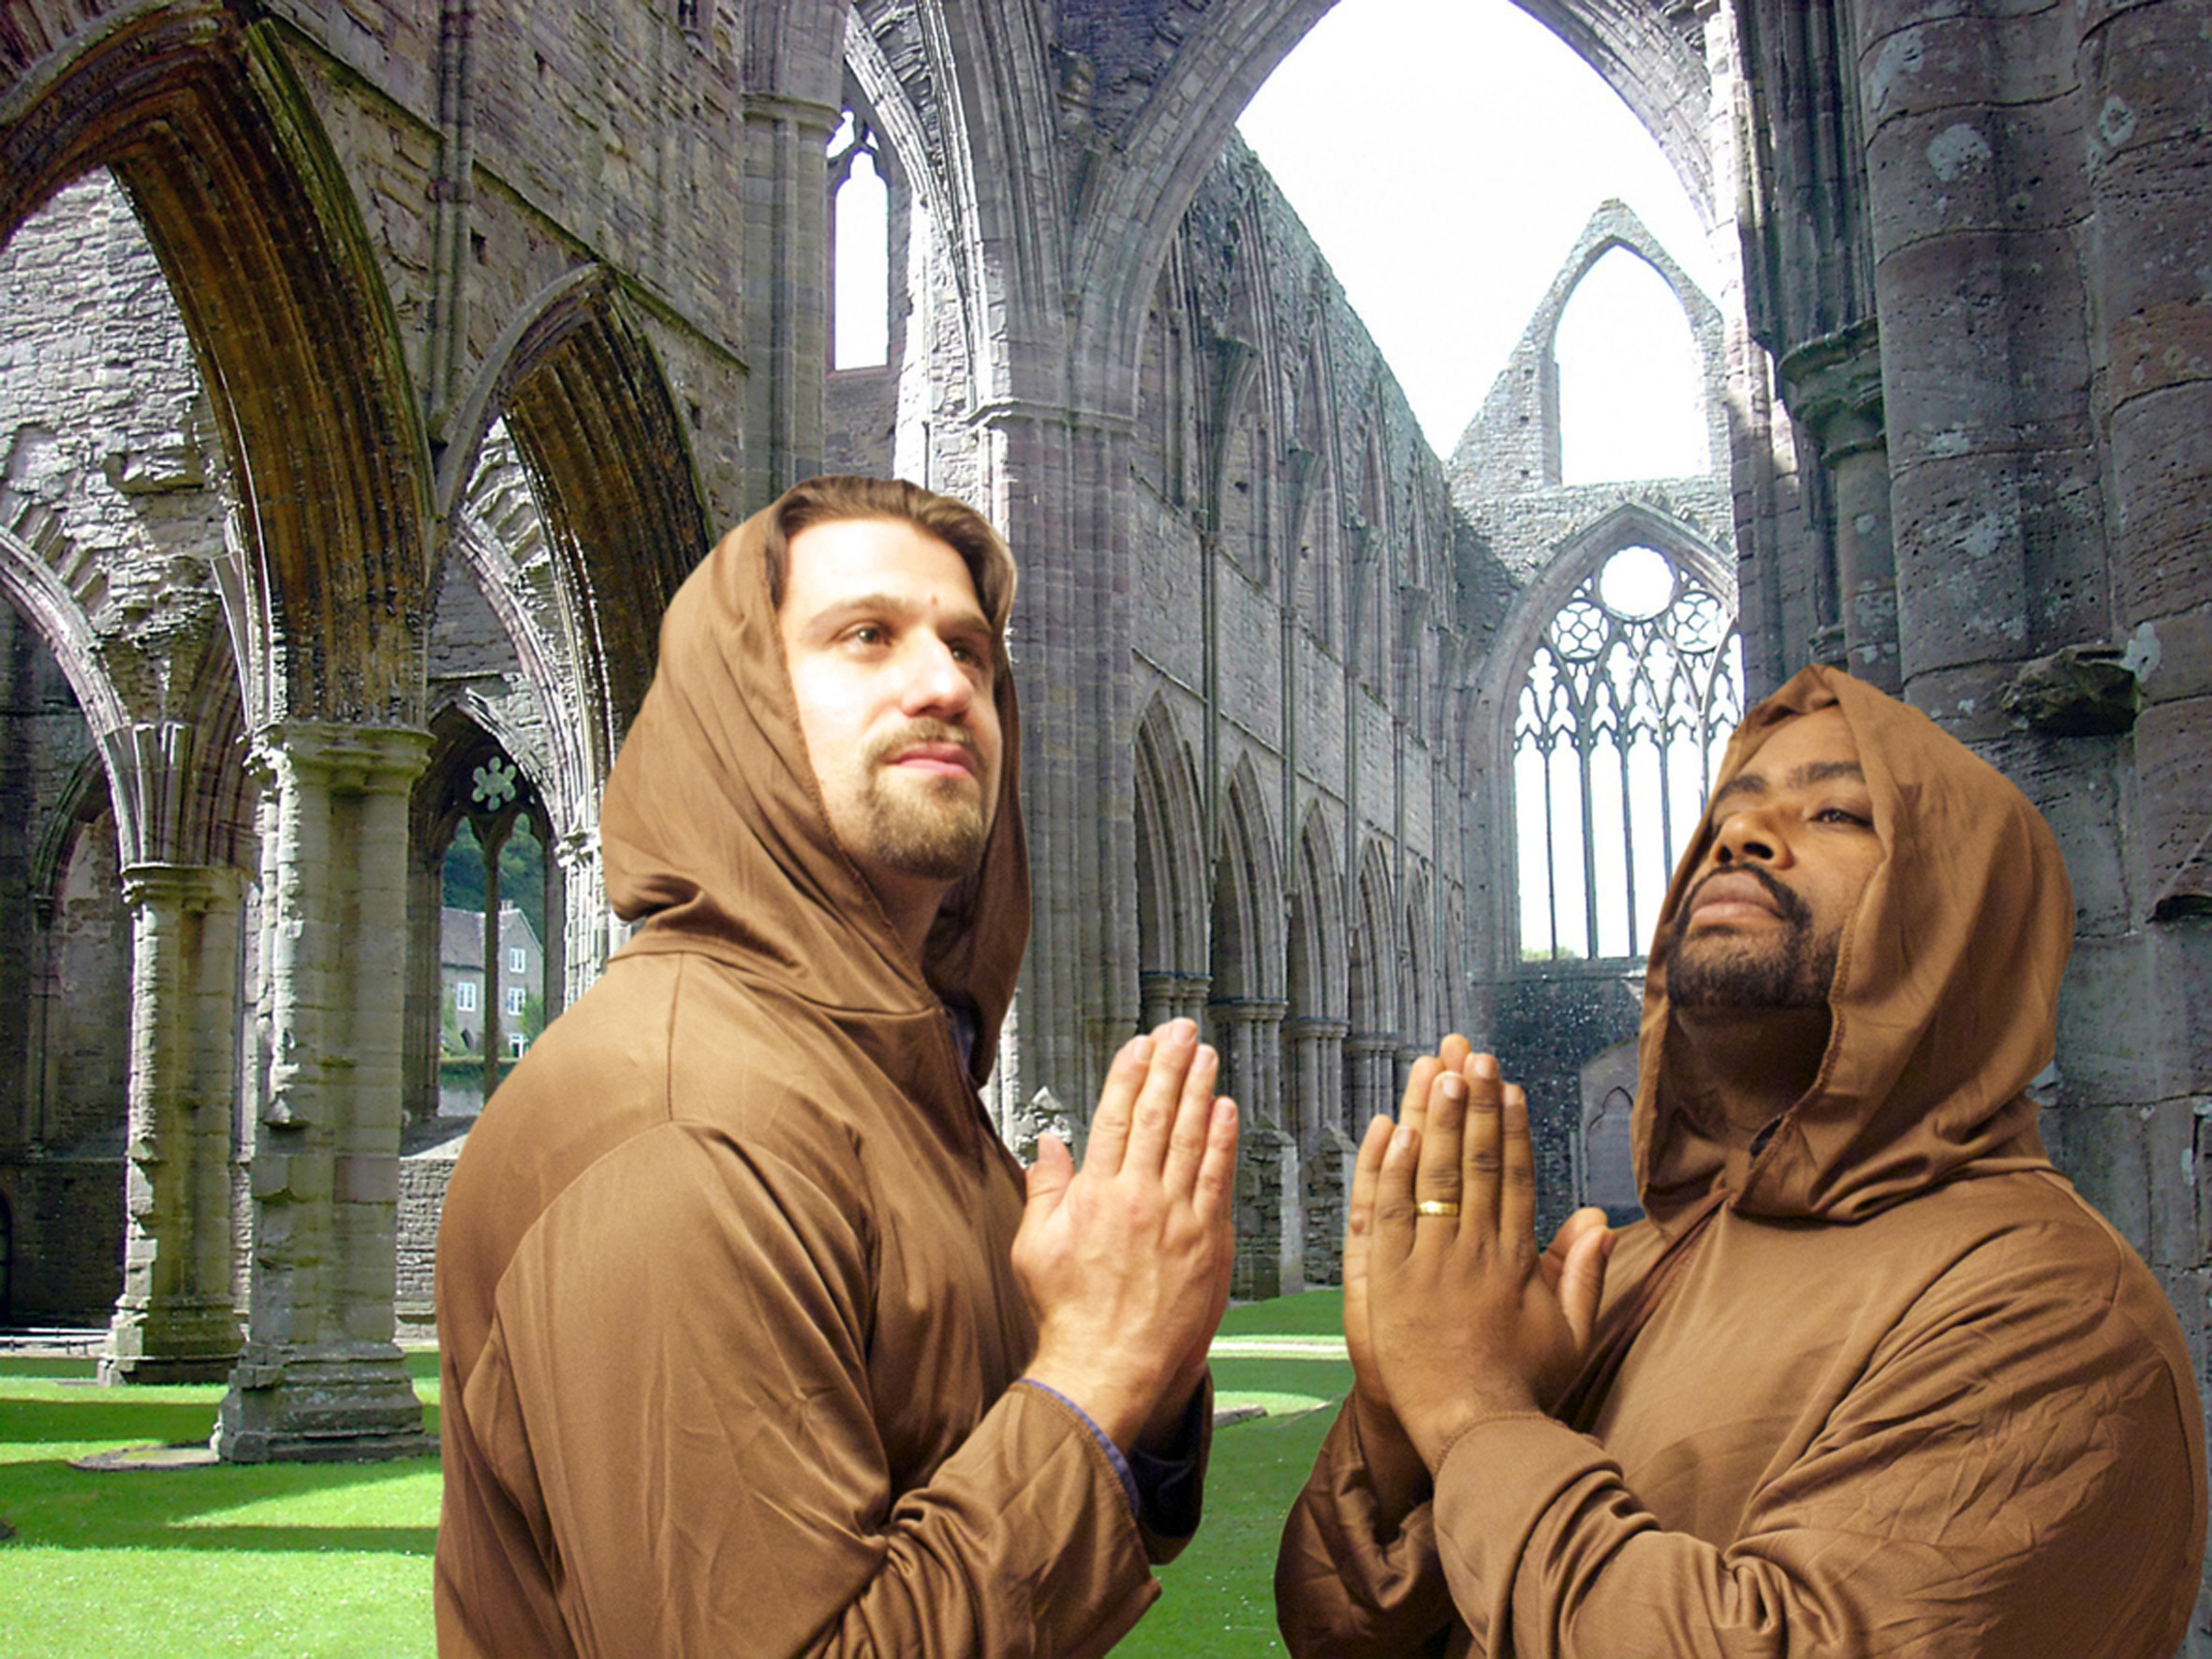 The monks having epiphanies in the courtyards